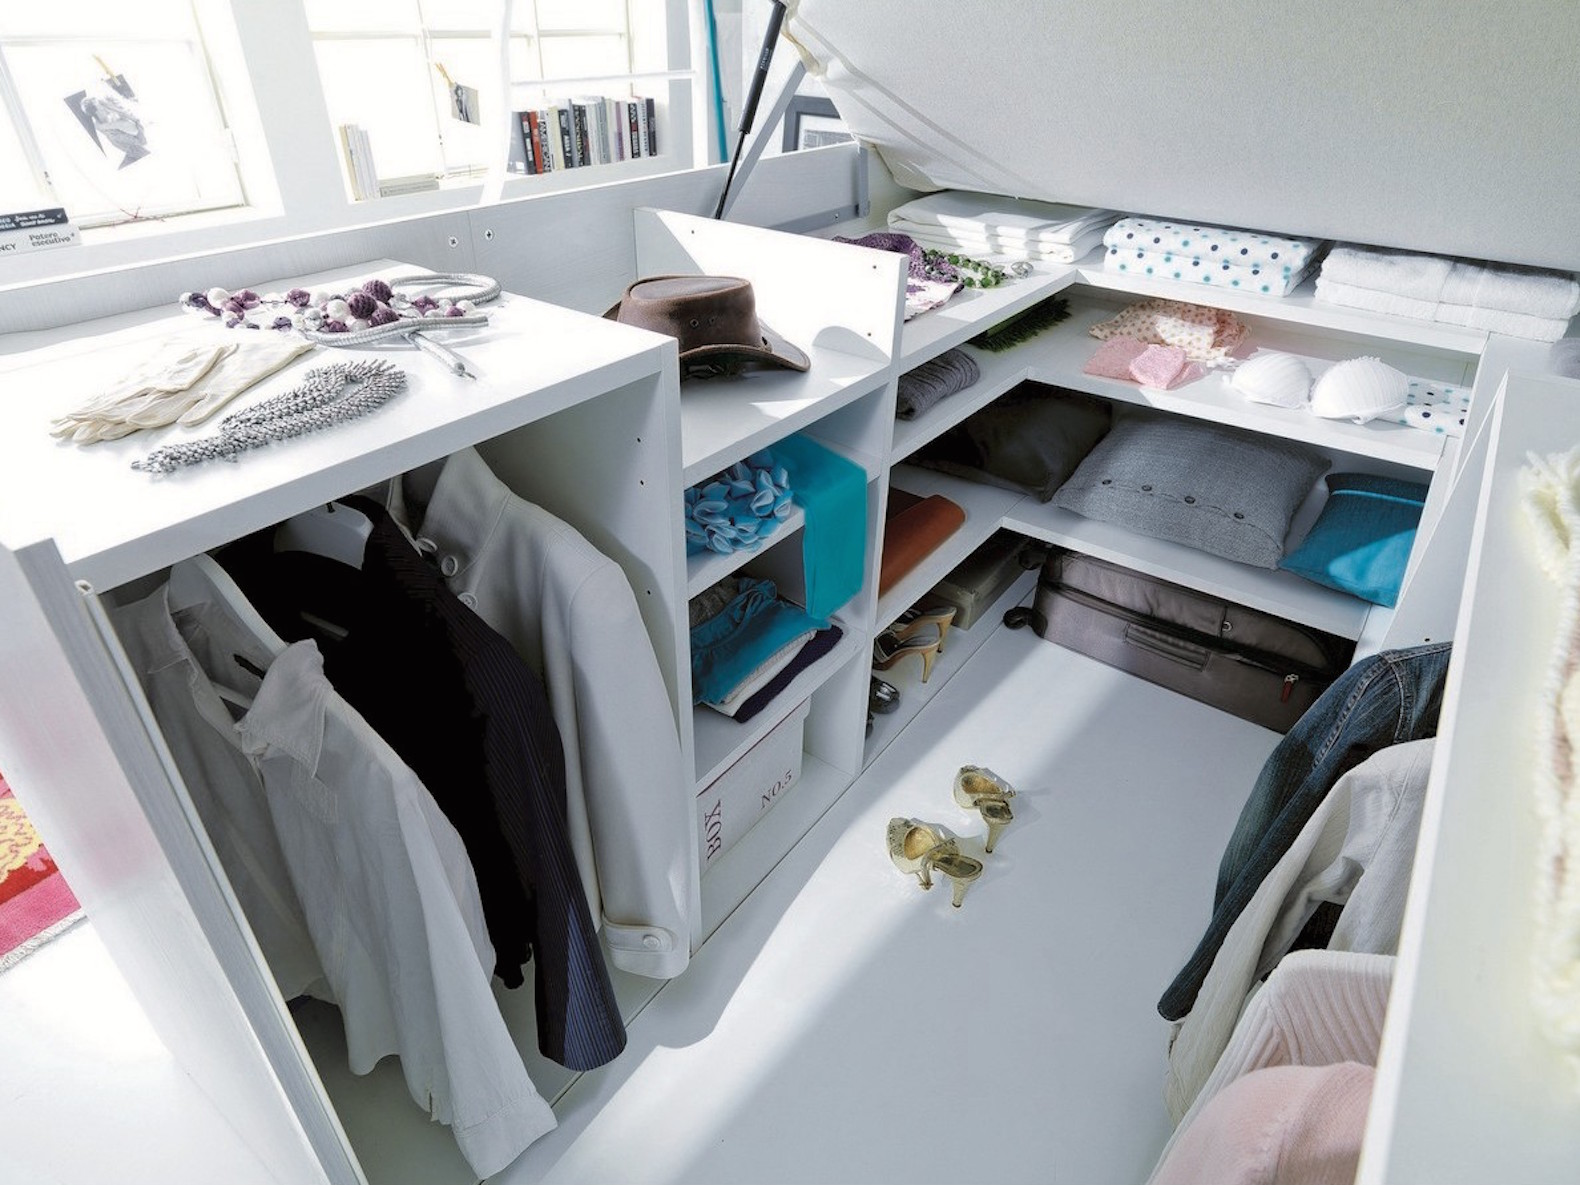 Space Saving Wardrobe Ideas Smart Space Saving Bed Hides A Walk In Closet Underneath